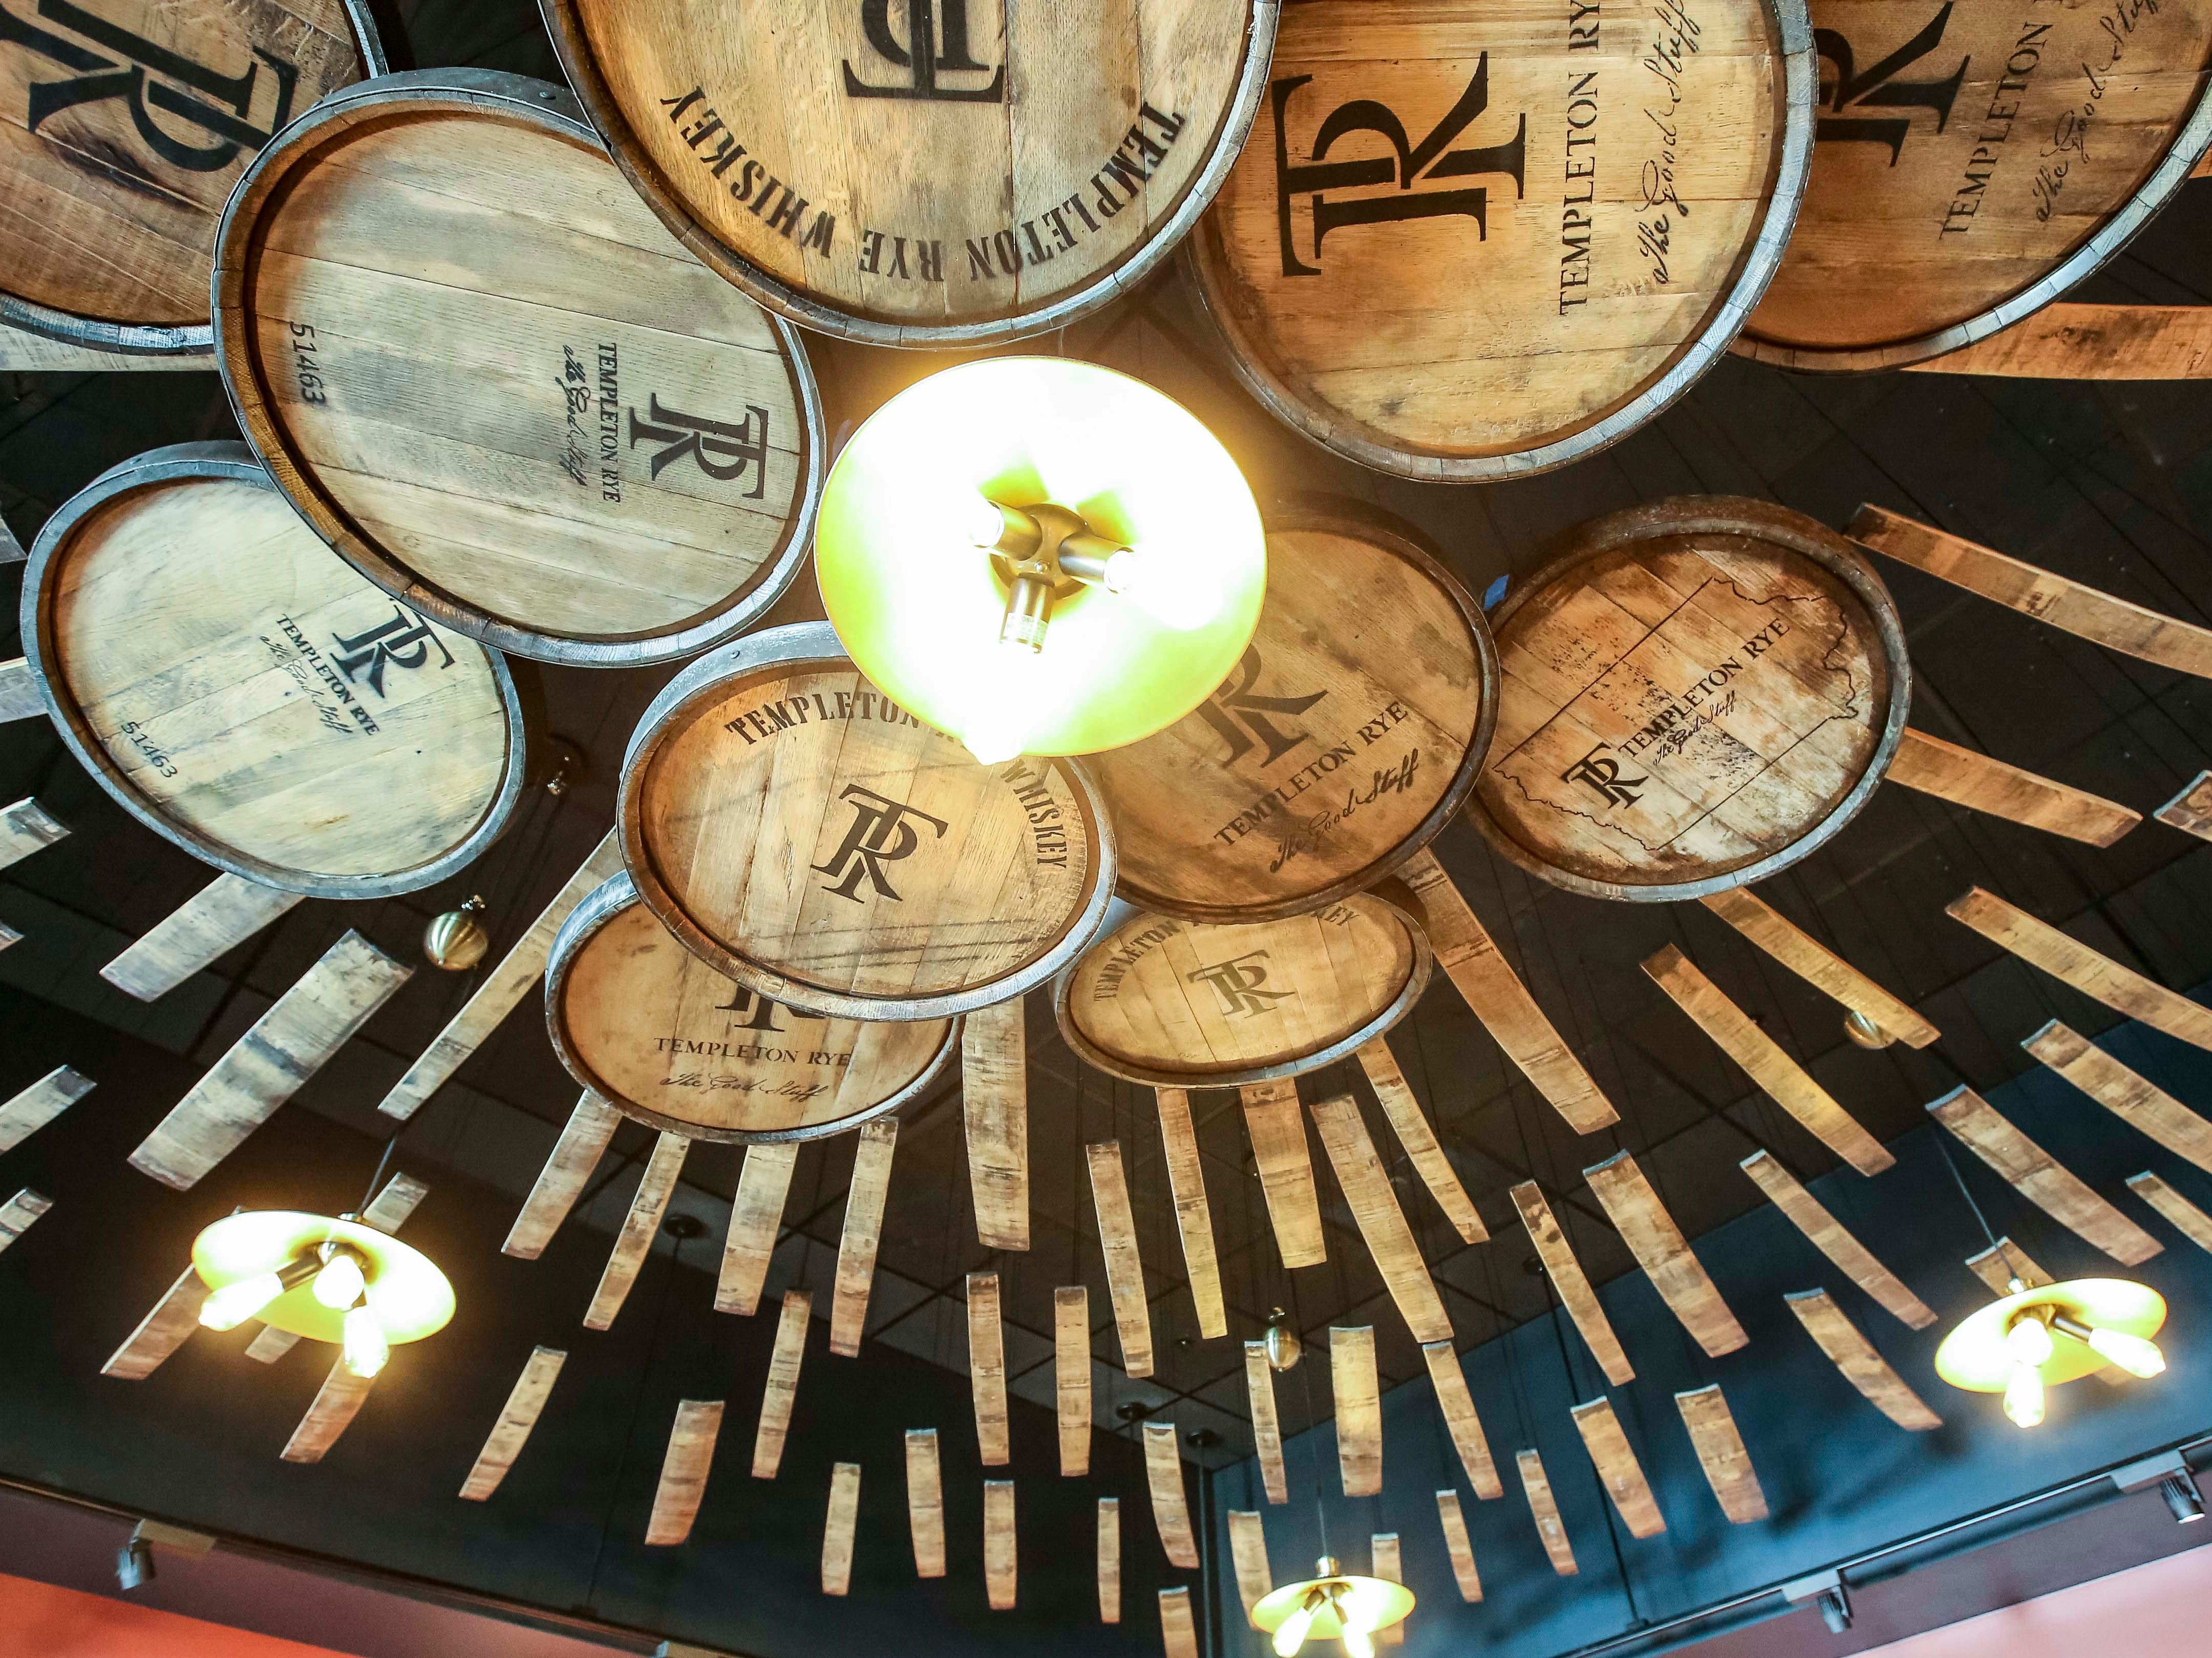 Display in the gift shop using aging barrels for Templeton Rye in Templeton, Iowa, shown here Monday, Aug. 6, 2018.